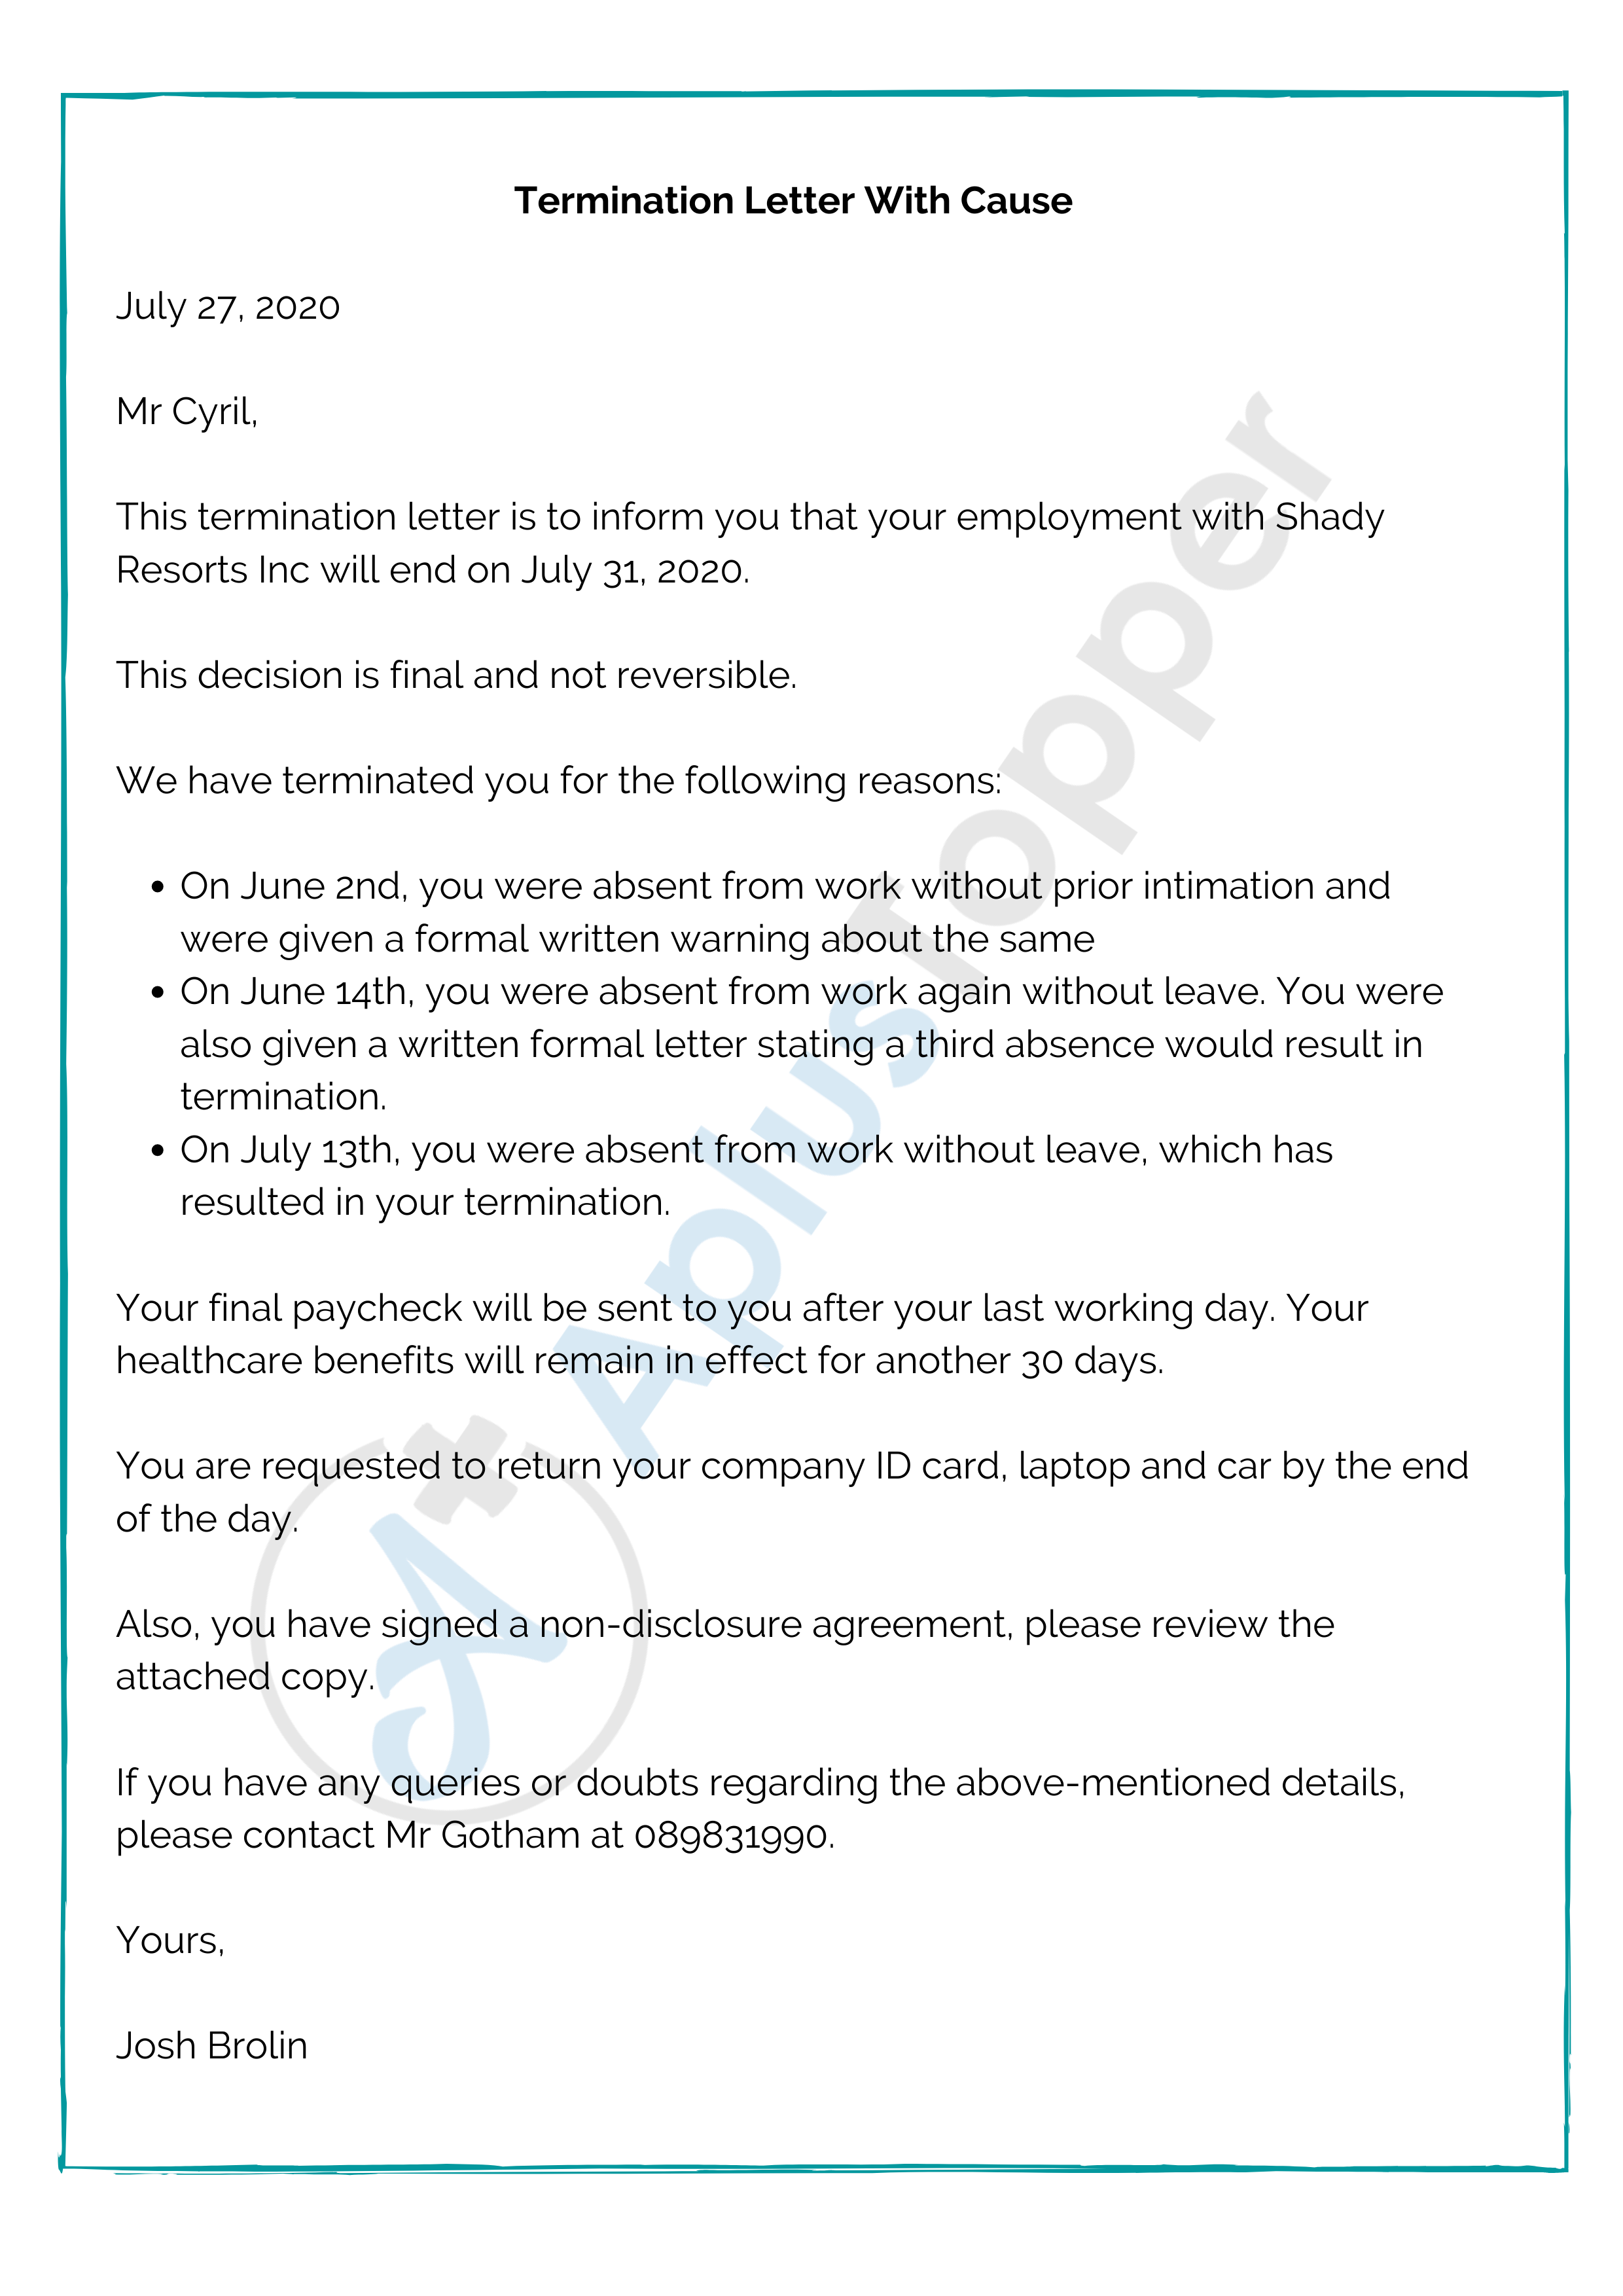 Termination Letter With Cause